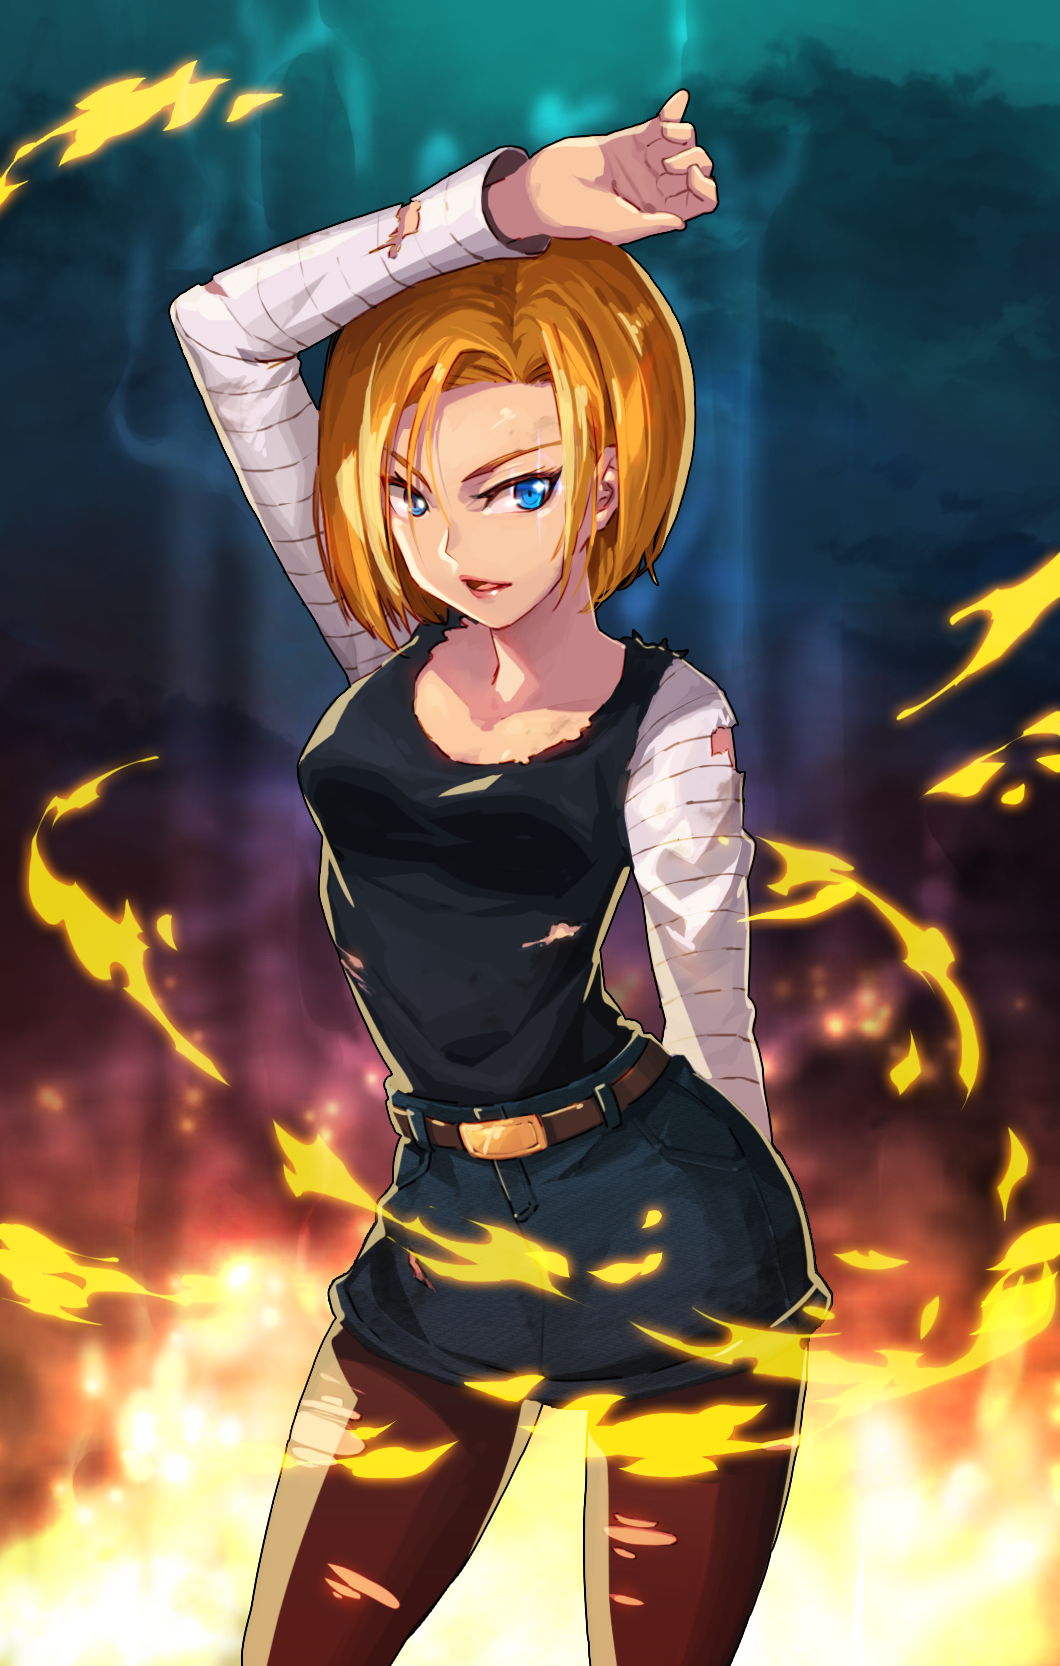 1girl android_18 belt black_legwear blonde_hair blue_eyes breasts denim_skirt dragon_ball dragon_ball_z fire highres open_mouth pantyhose puyon_(pixiv) simple_background skirt torn_clothes torn_pantyhose